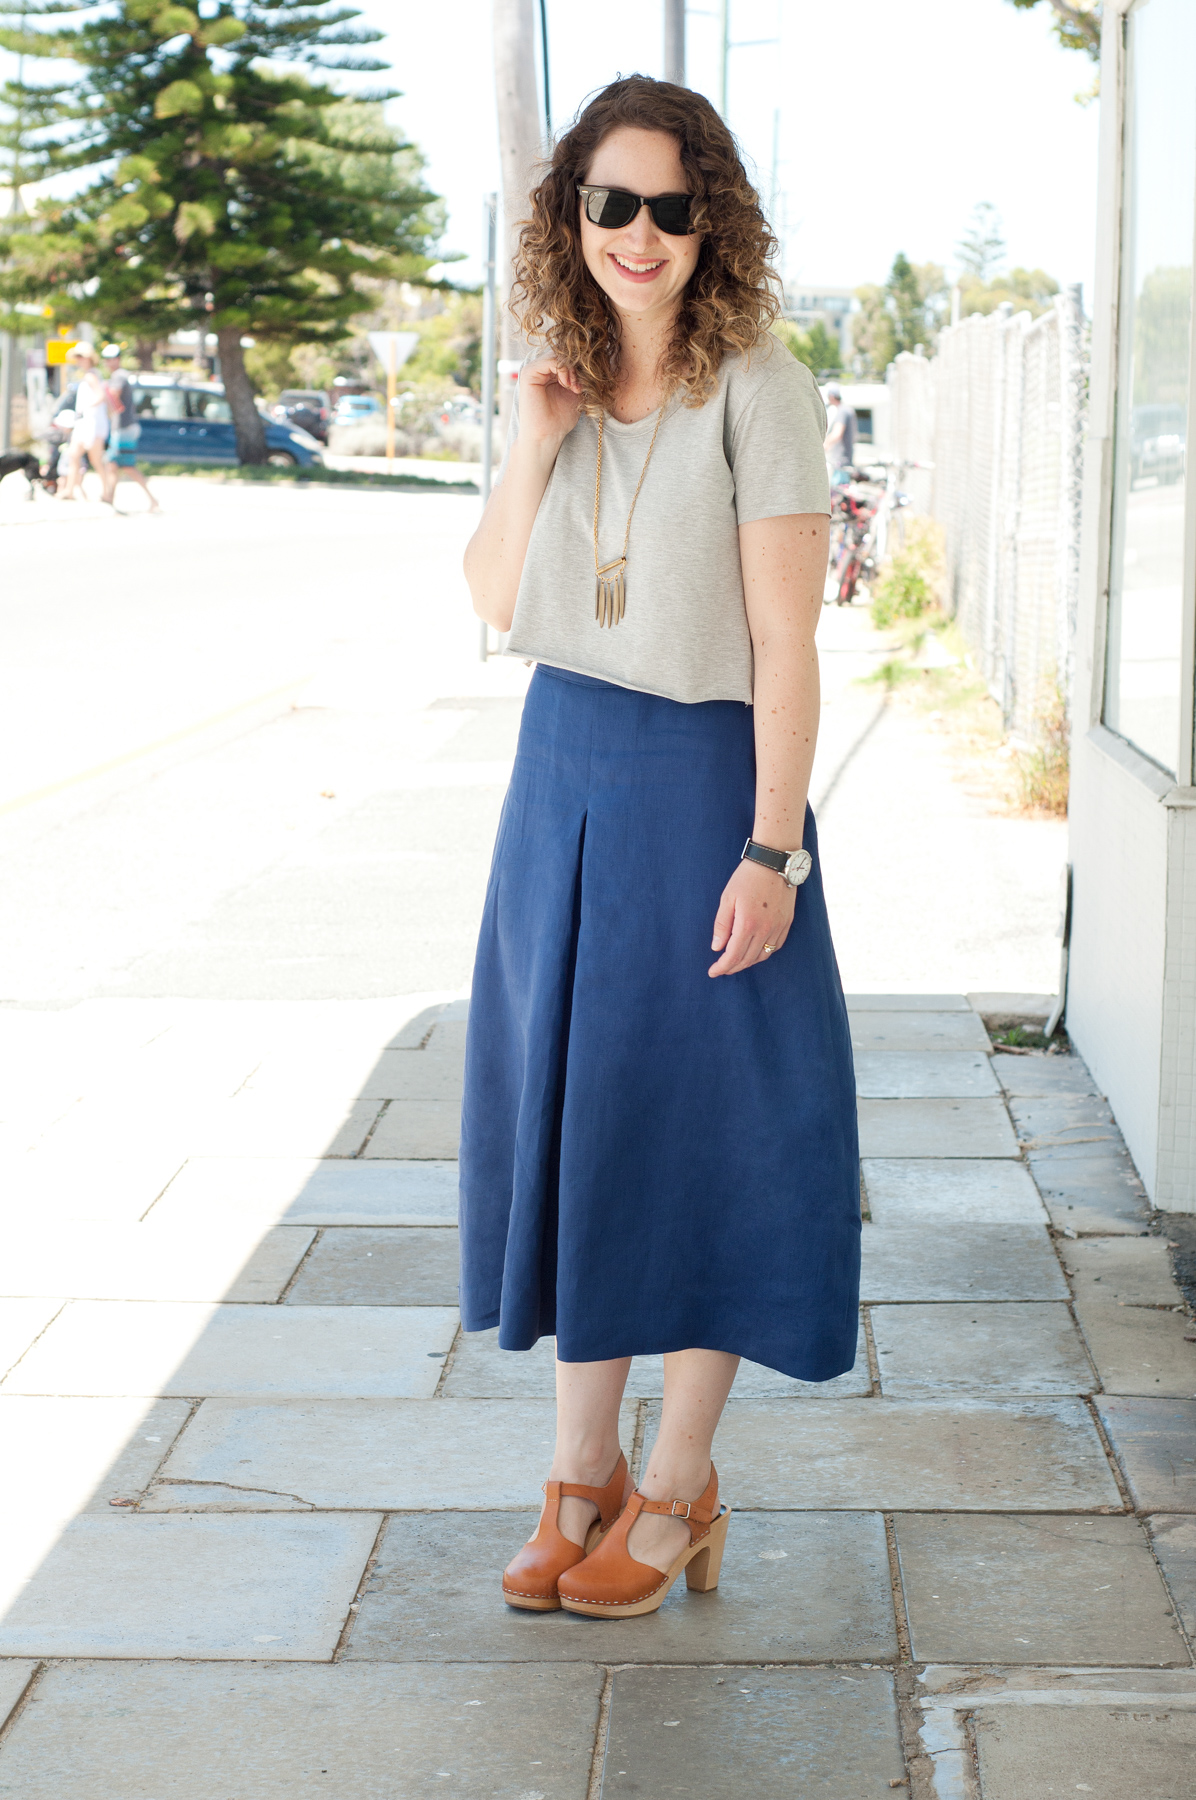 10 most worn makes in 10 years of blogging // Megan Nielsen Tania culottes